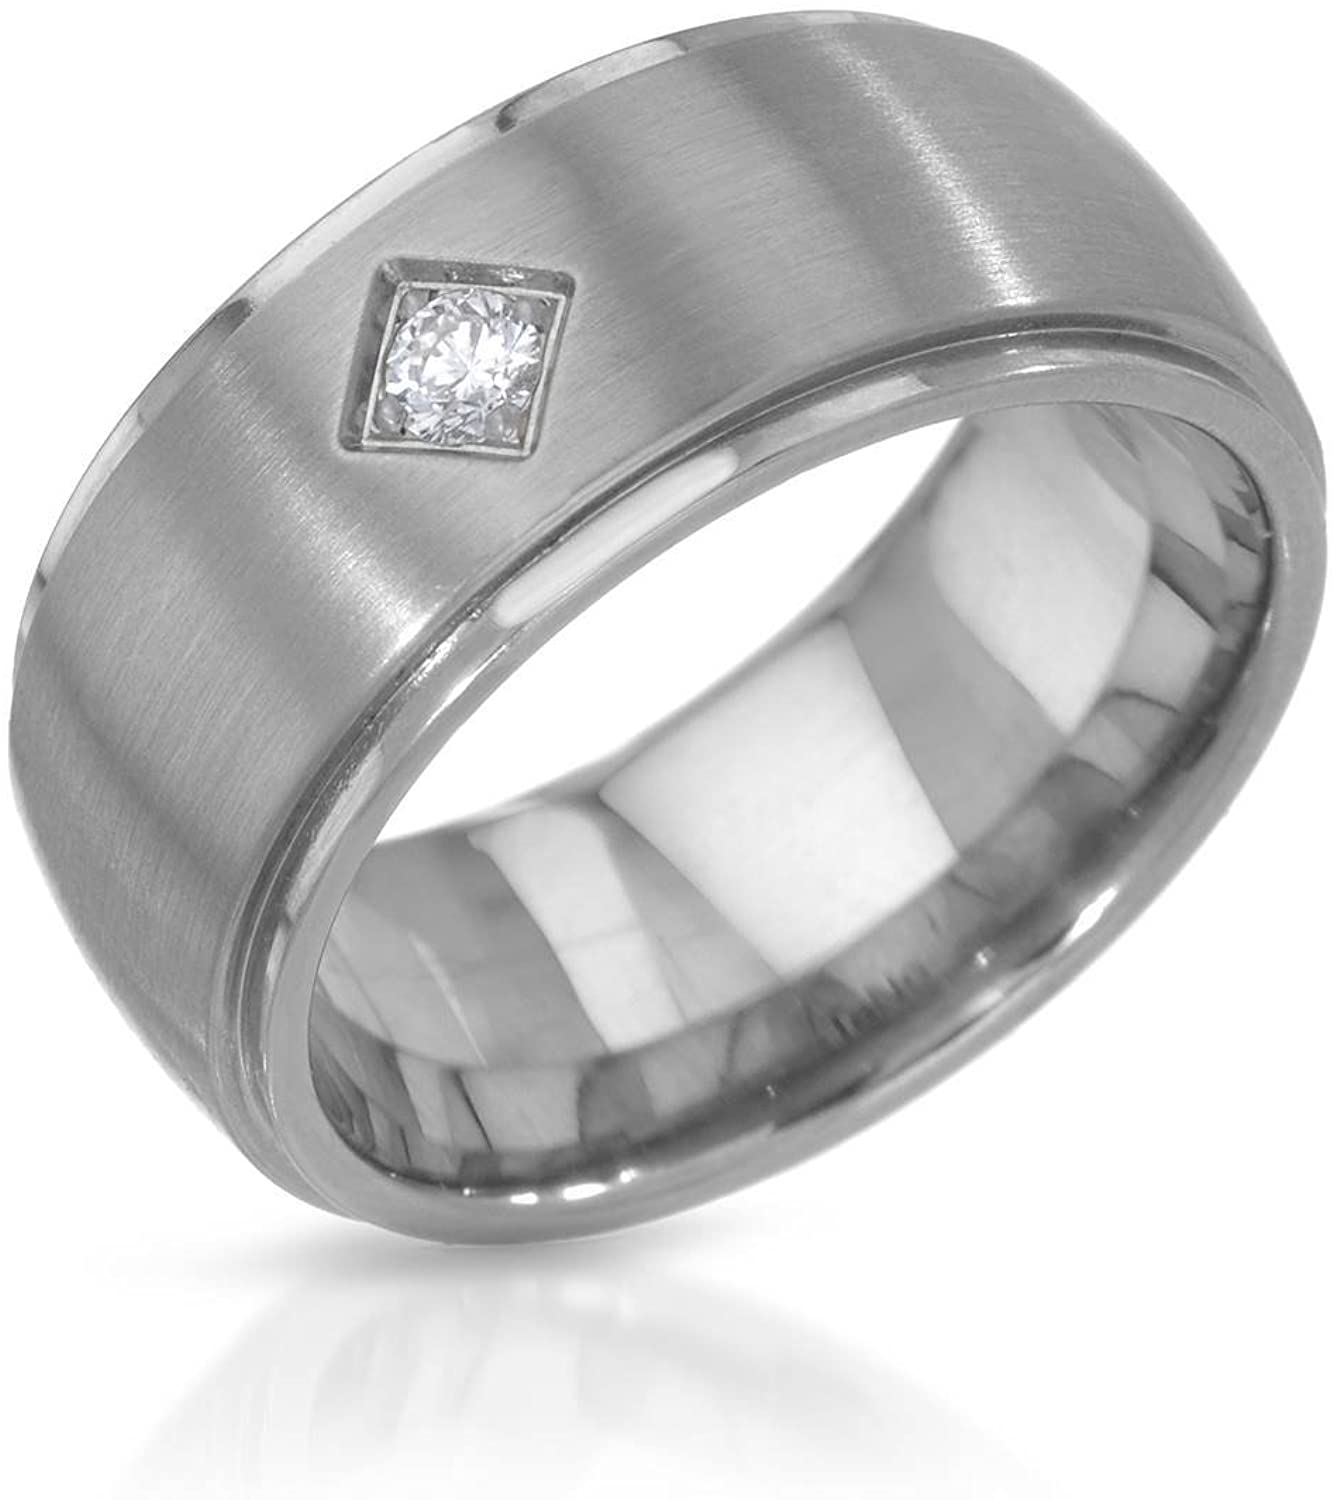 TeNo Stainless Steel 0.06 CTW Color F, VS1 Diamond Band Ring. Ring Size 5.5.